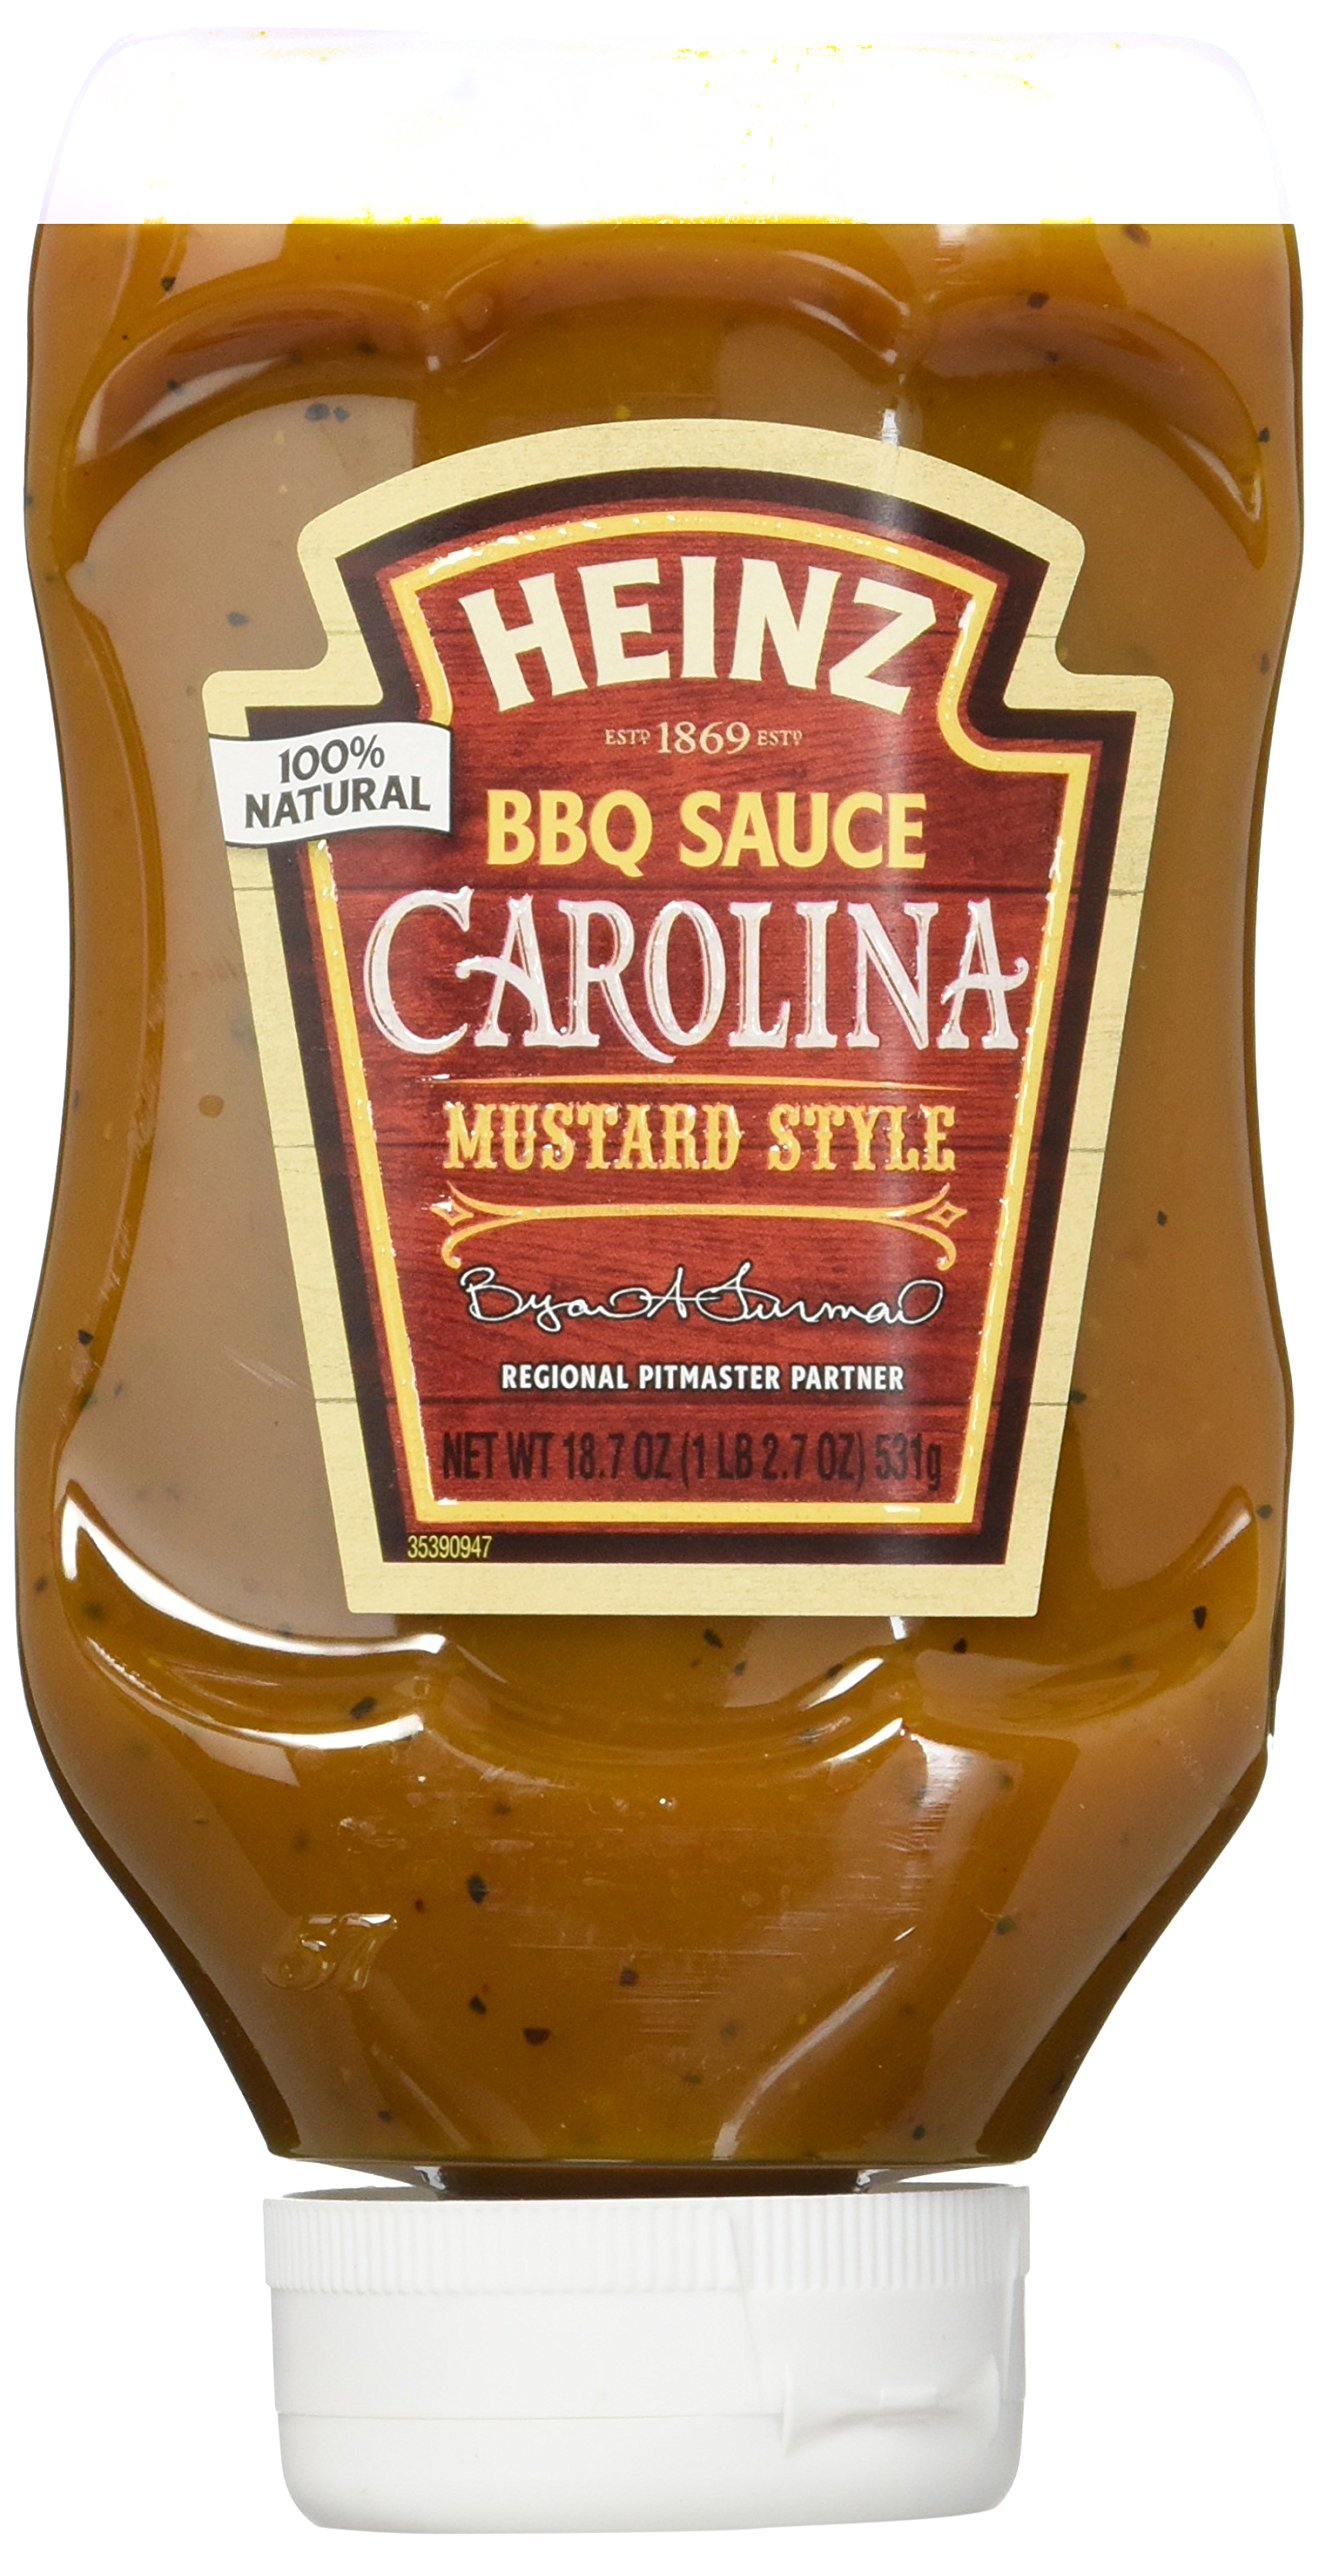 Heinz BBQ Sauce, Carolina Mustard Style BBQ Sauce, 18.7 ounce squeezable bottle(Pack of 6)